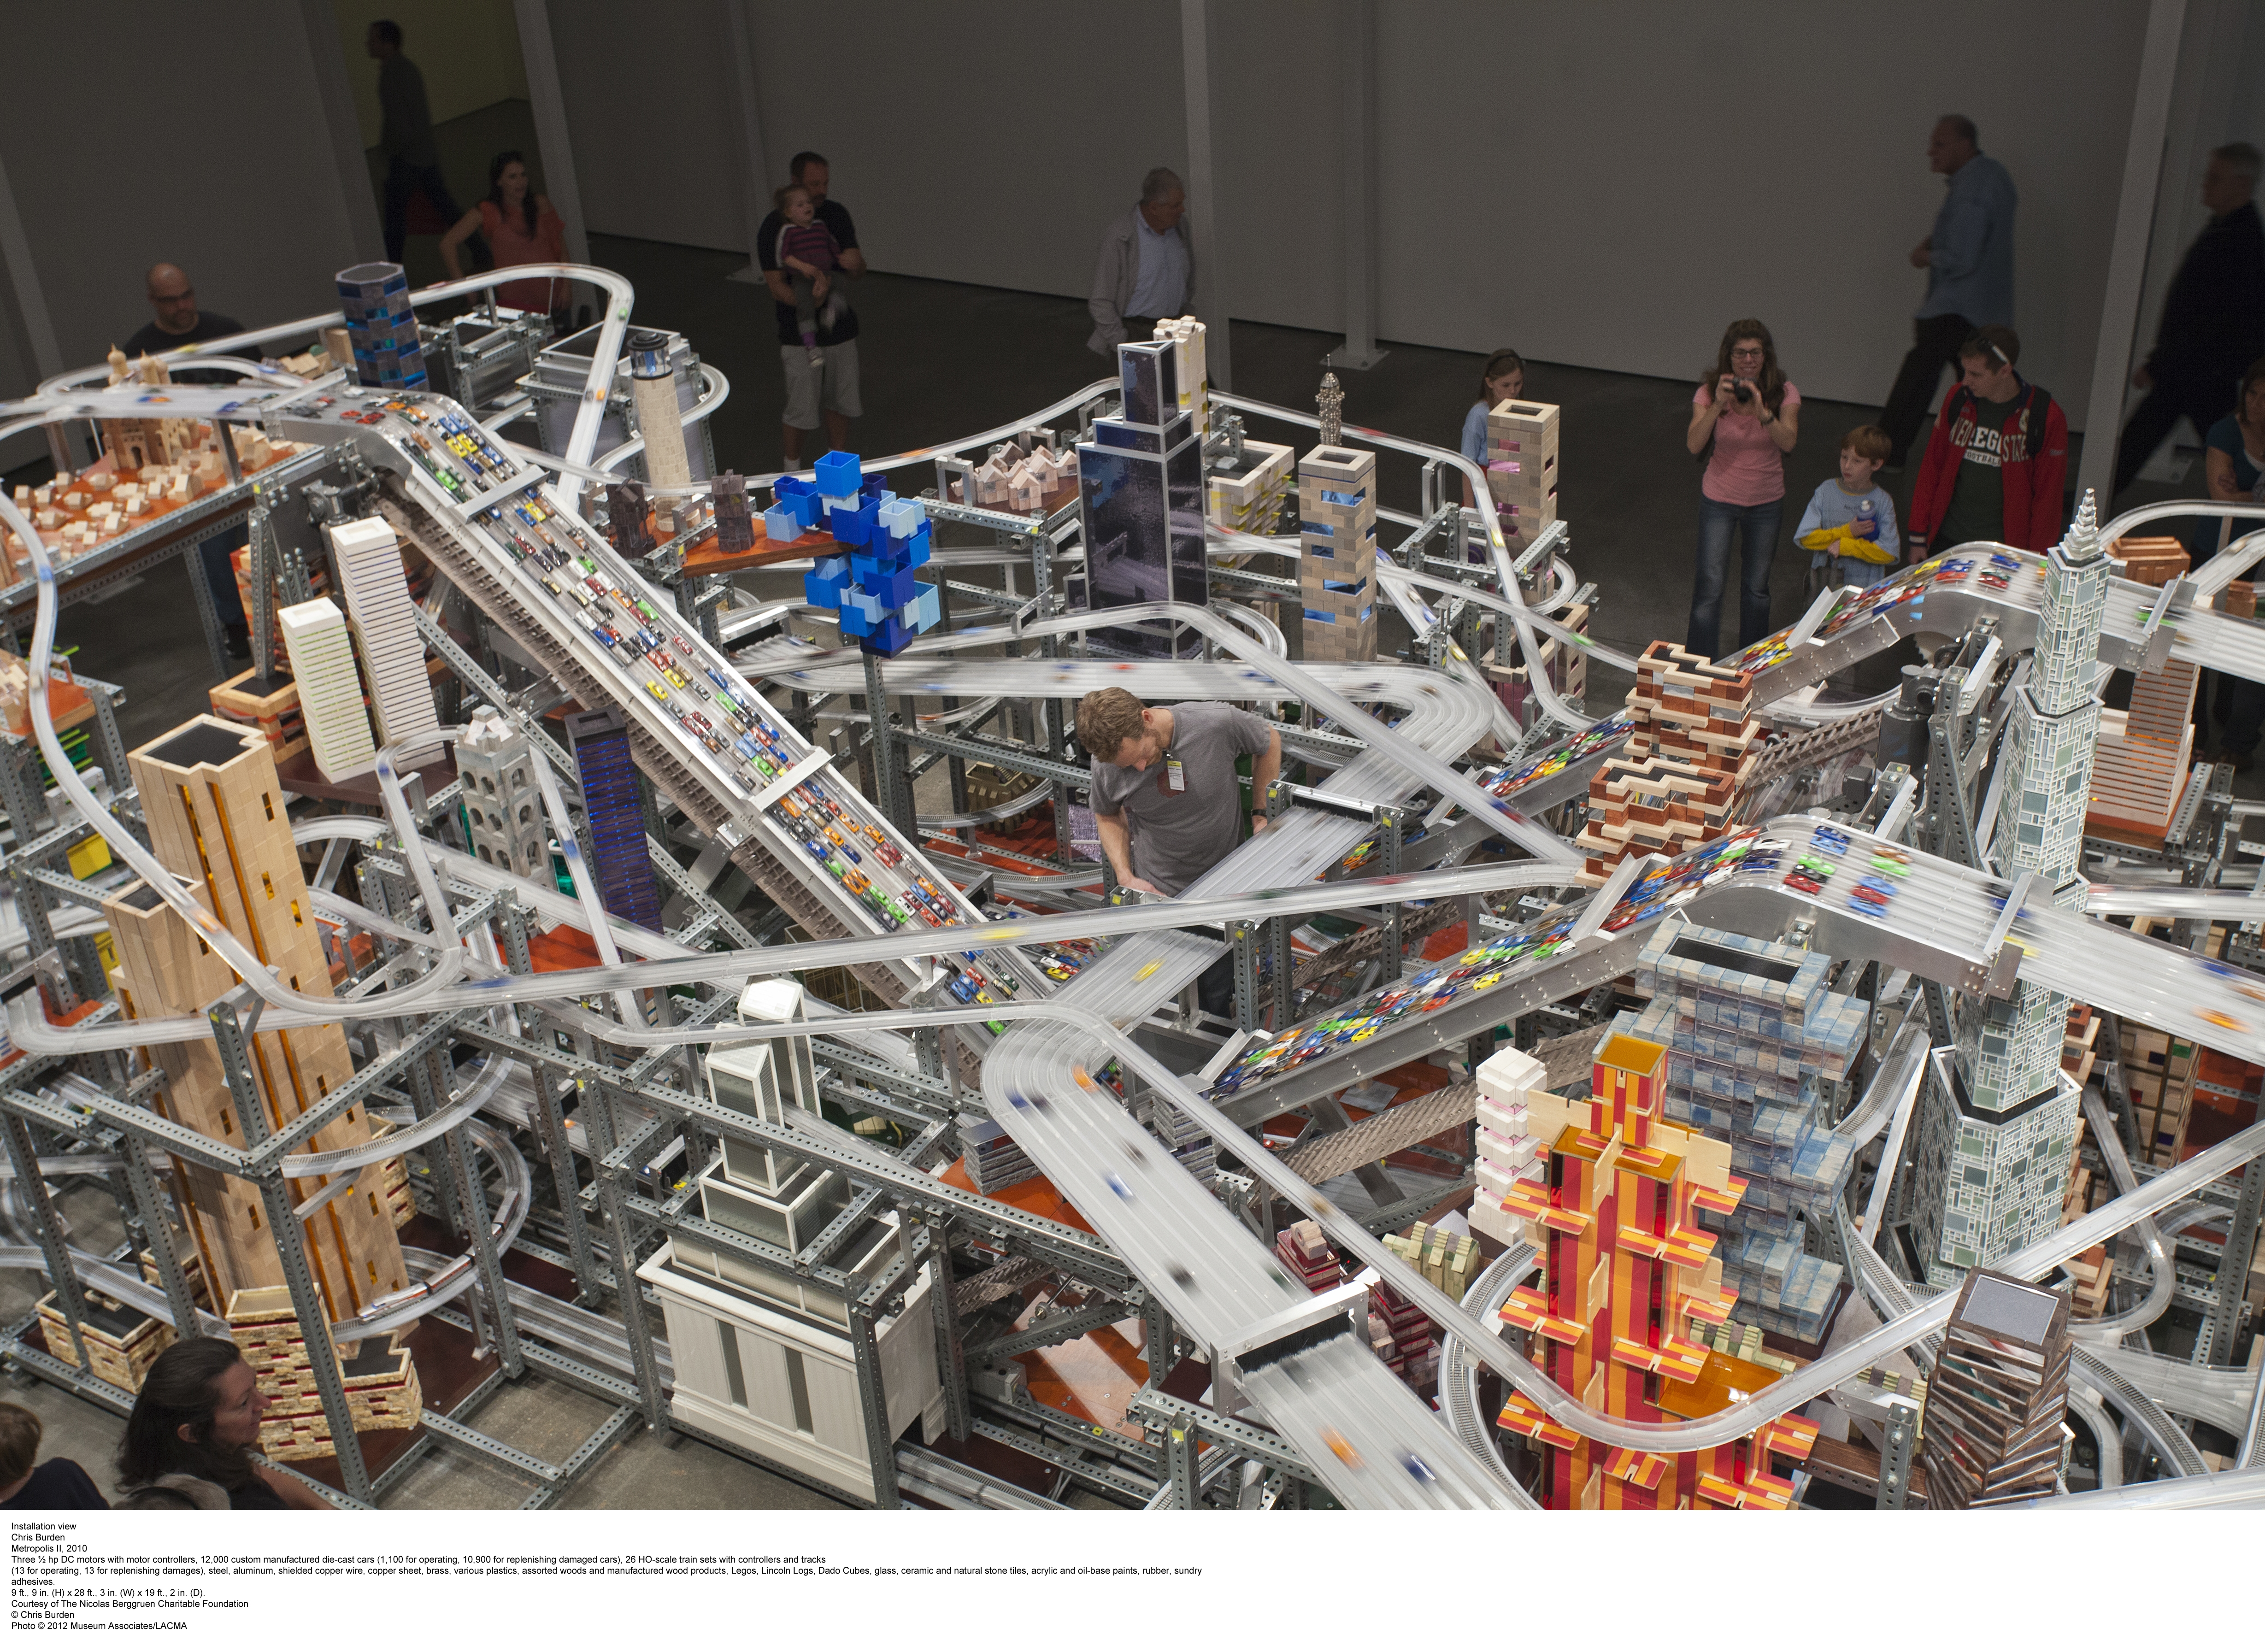 Metropolis II from above